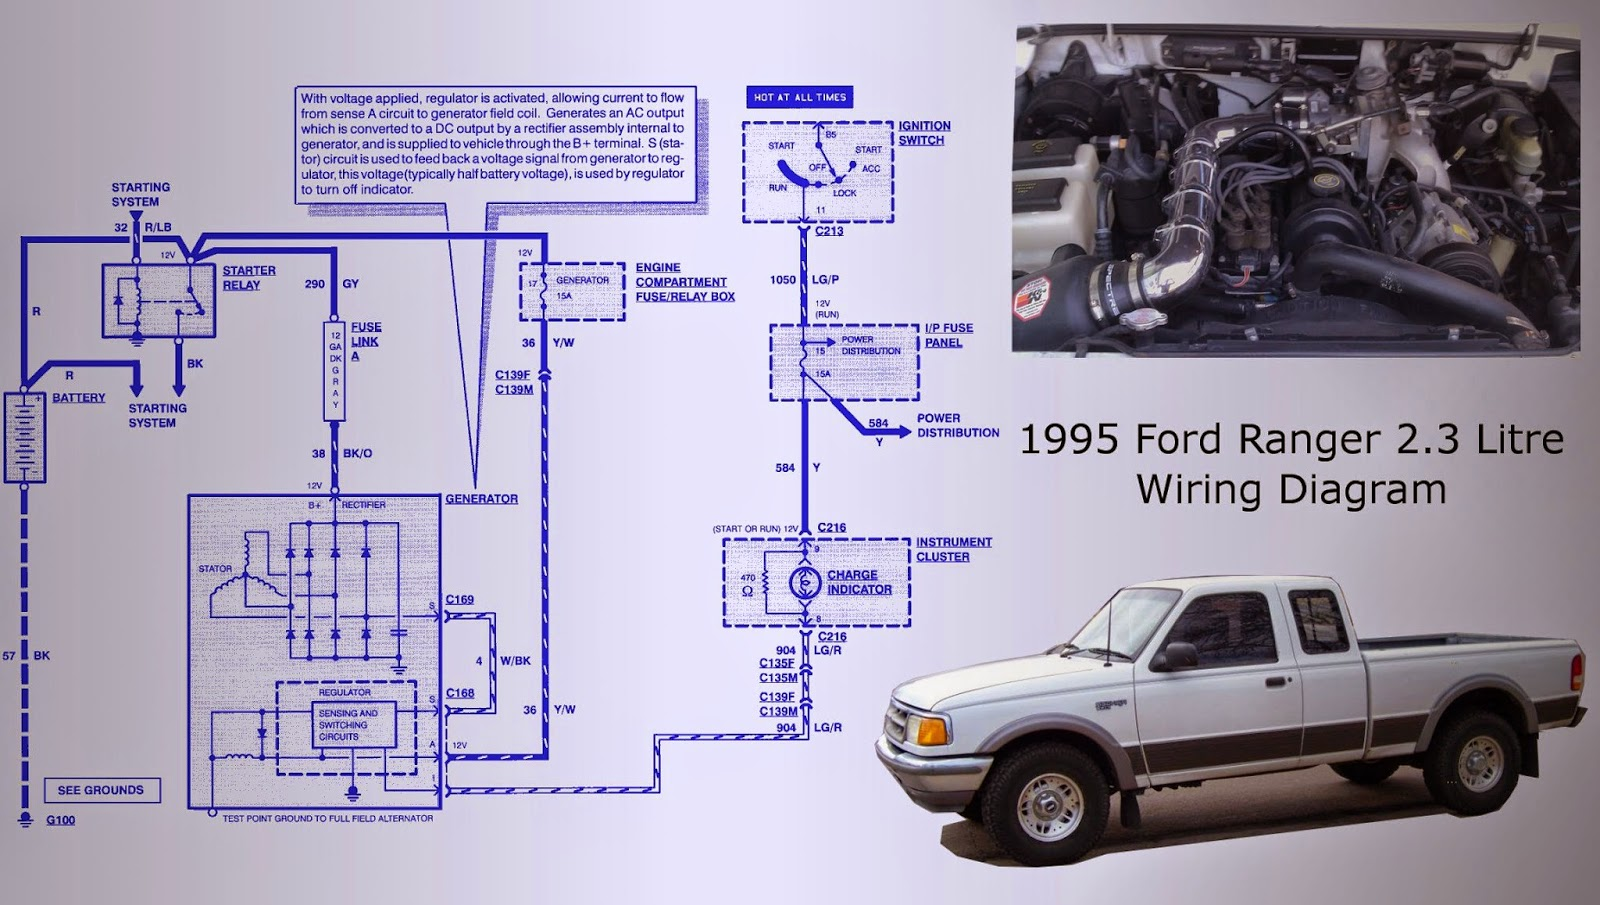 Ford Ranger Schematics Pictures To Pin On Pinterest PinsDaddy - 1995 ford ranger ignition wiring diagram